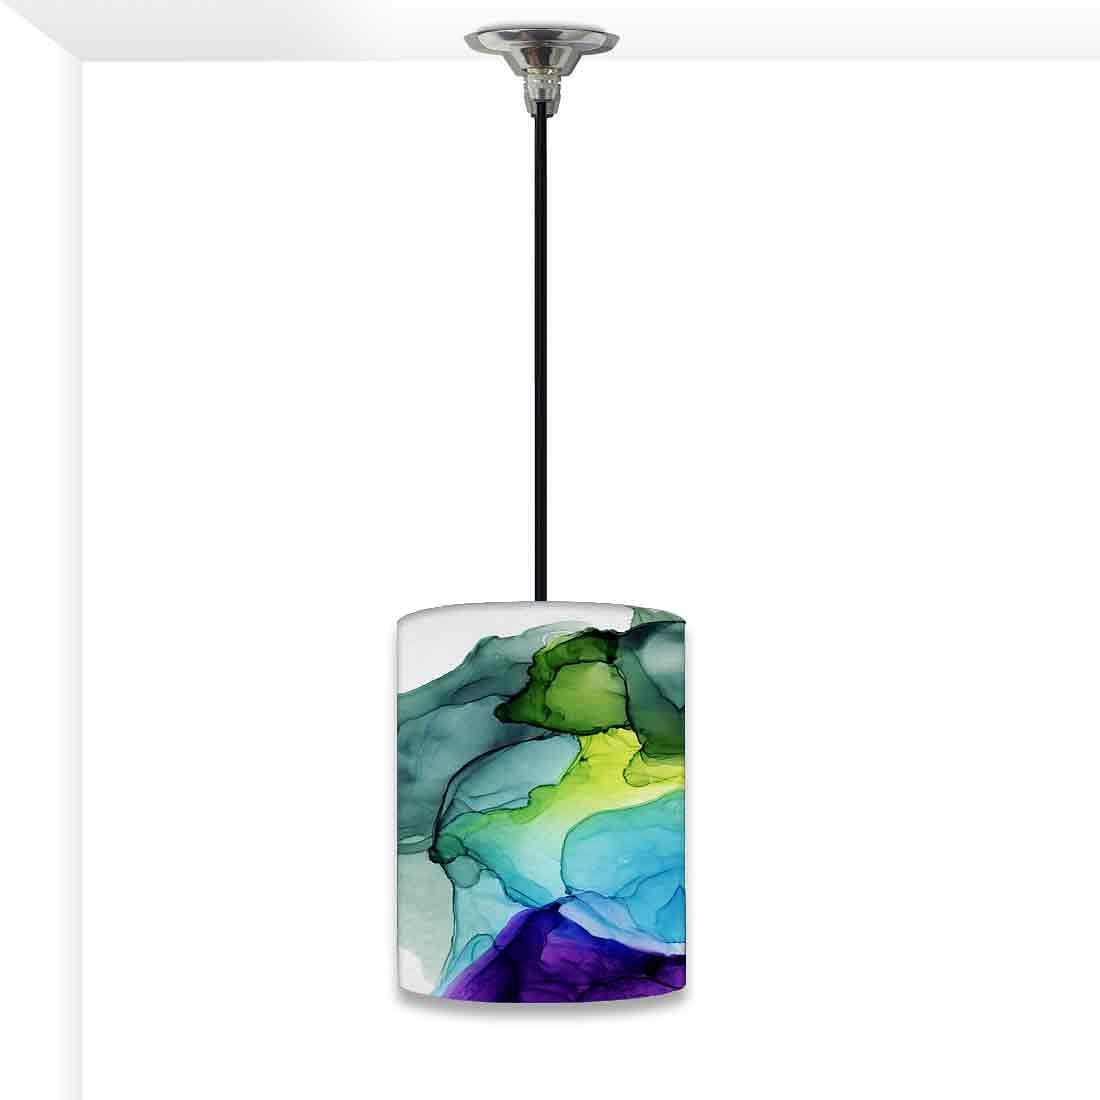 Ceiling Hanging Pendant Lamp Shade - Green Purple Ink Watercolor